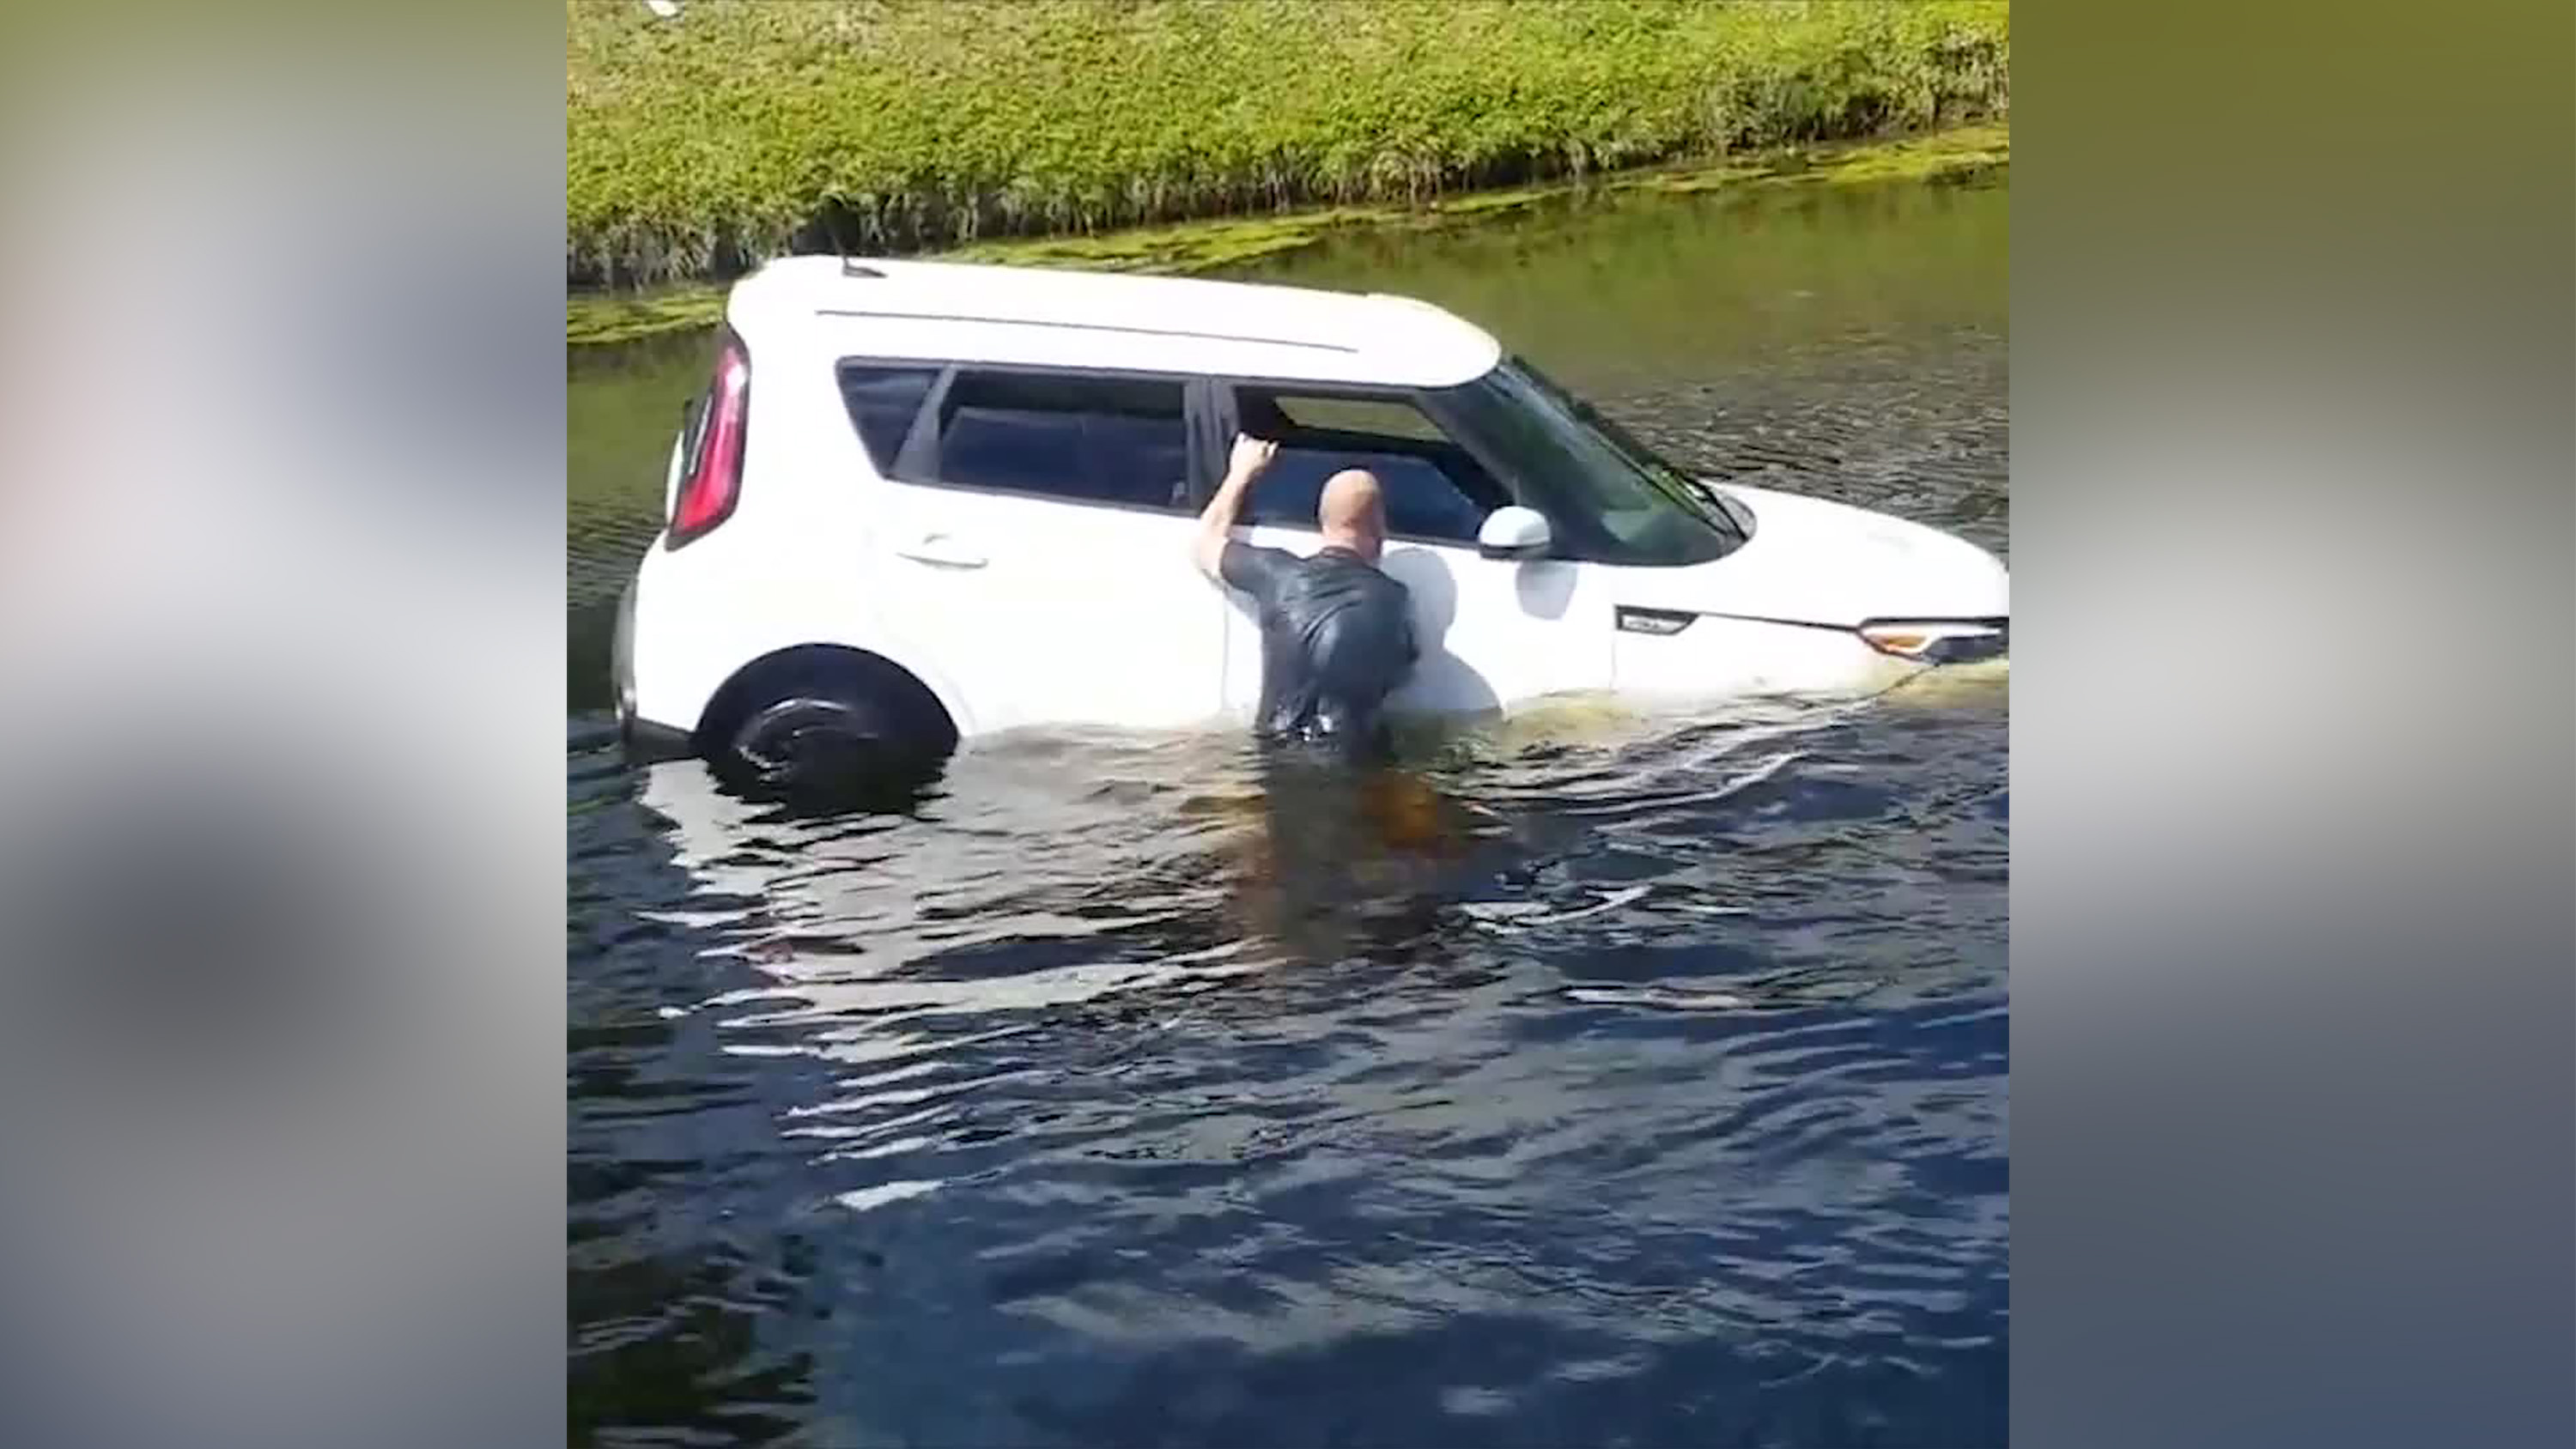 Strangers jumped into a Florida canal to rescue a woman from her sinking car